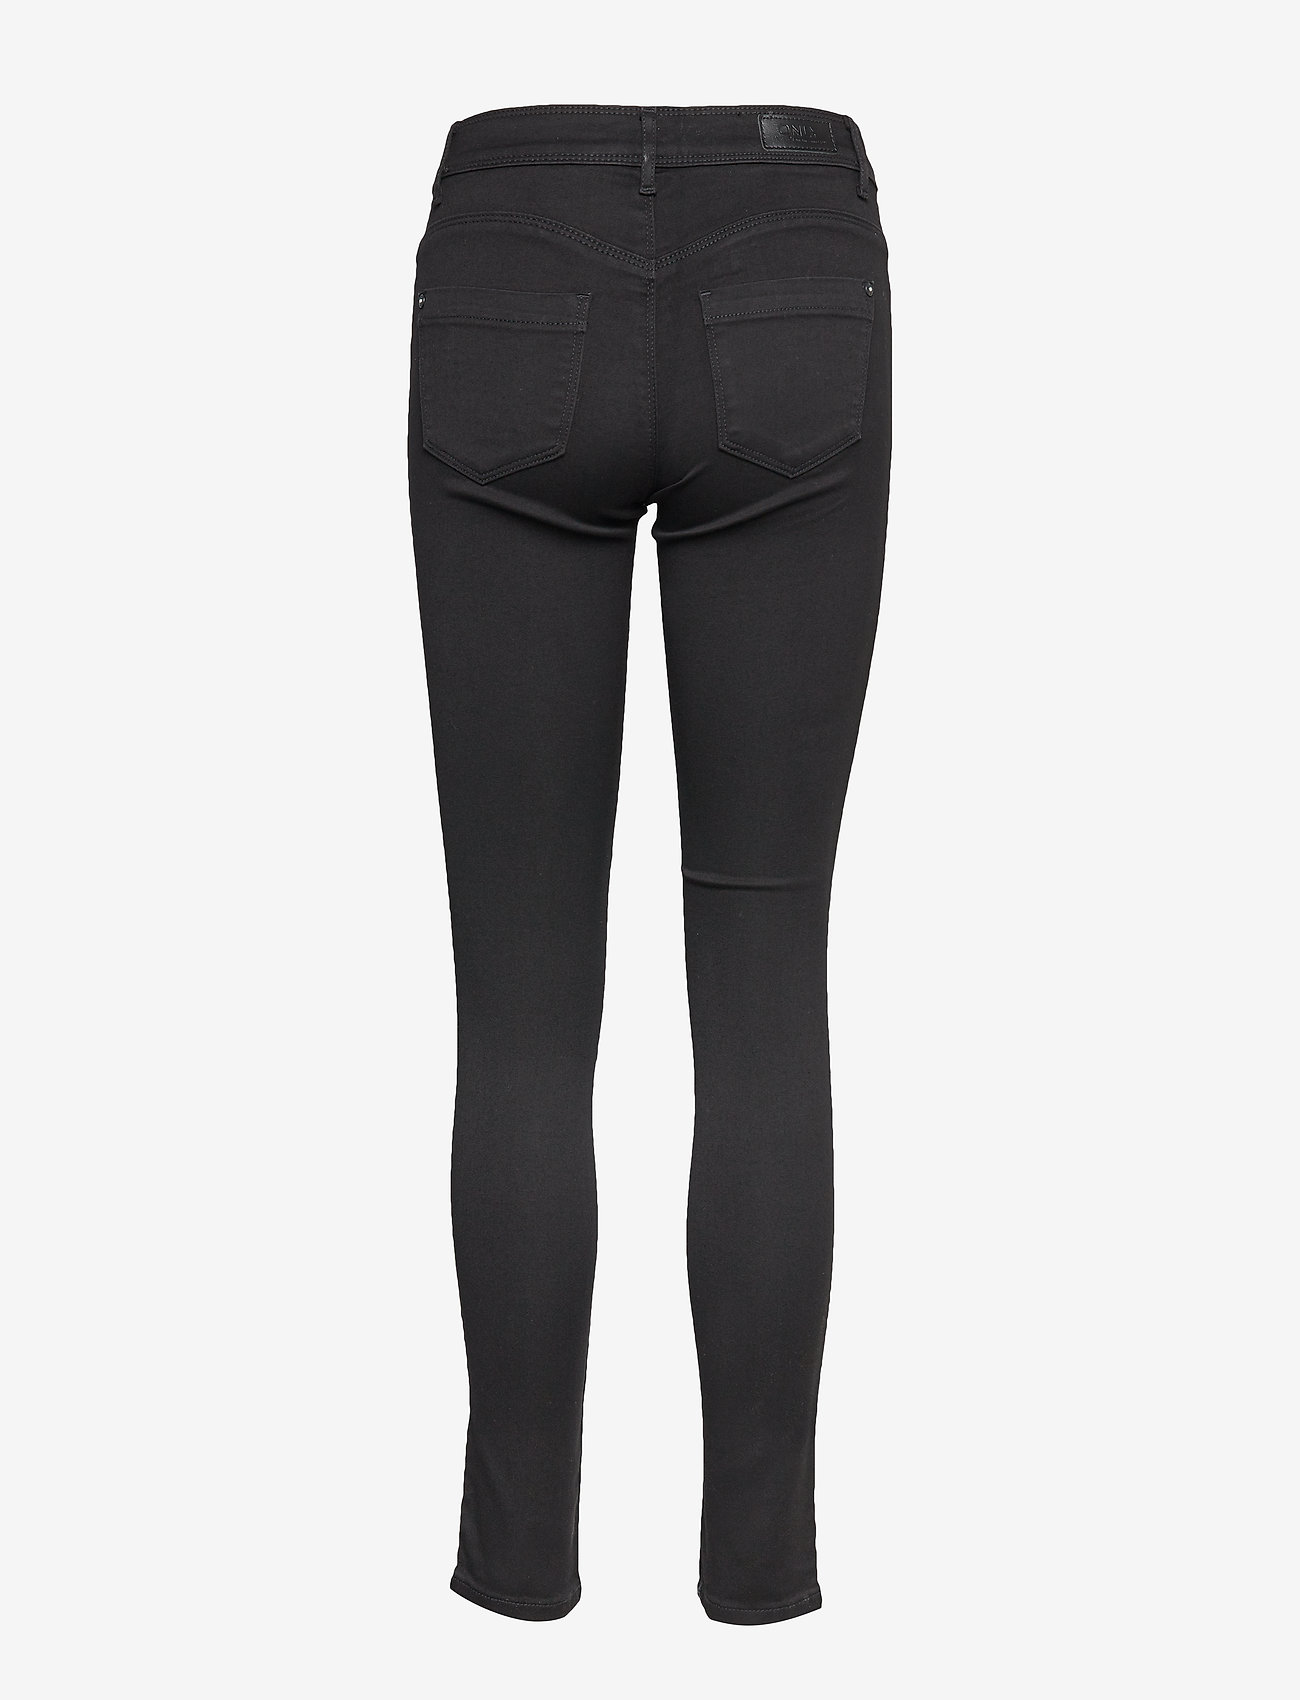 ONLY - onlULTIMATE KING REG JEANS CRY100 NOOS - skinny jeans - black denim - 1